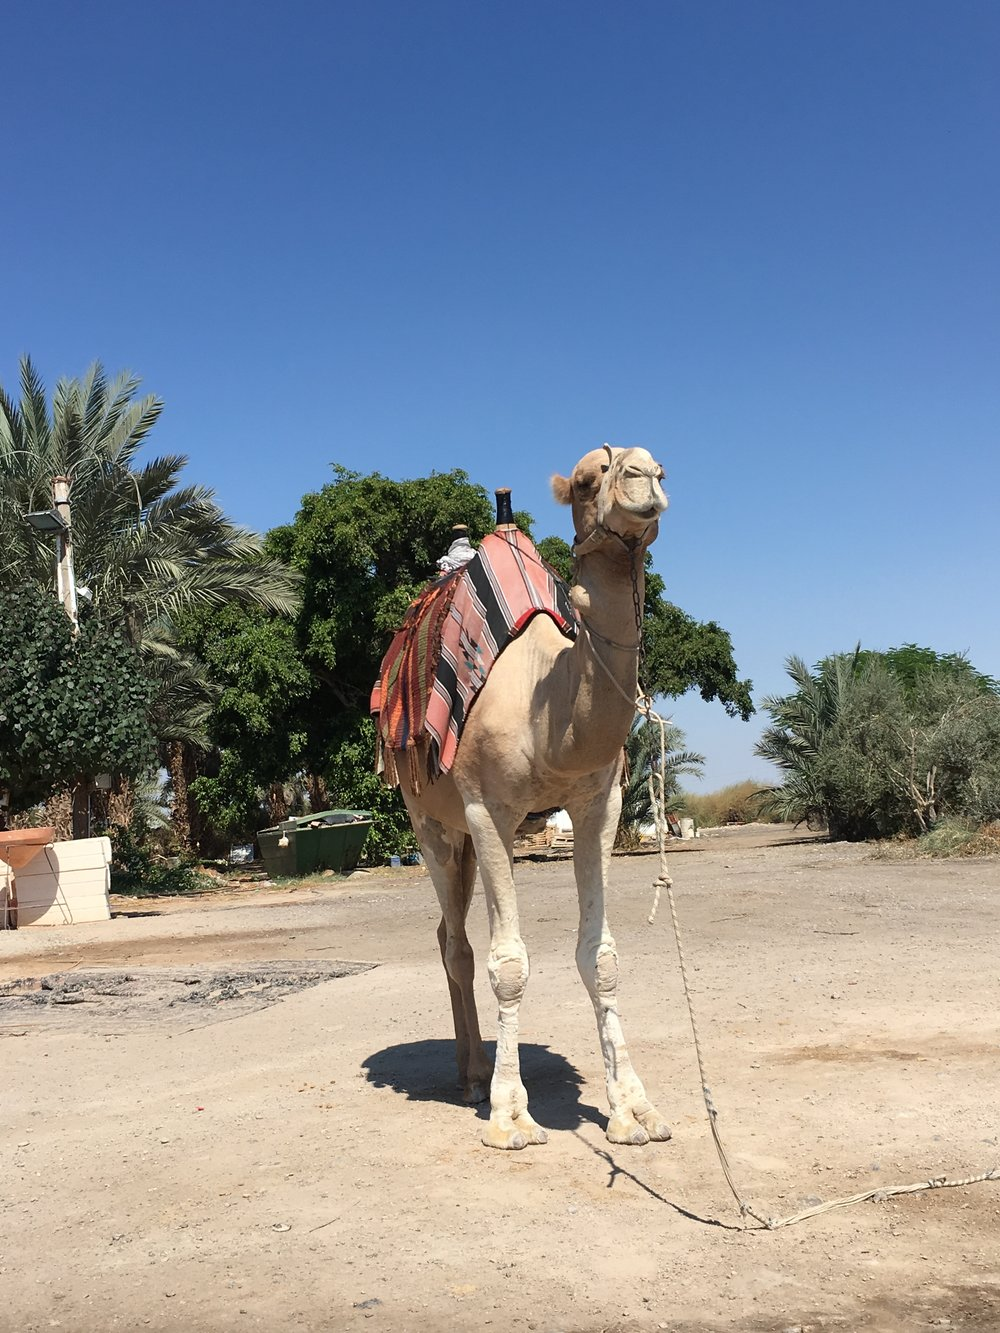 The Camel we stopped to admire in the West Bank